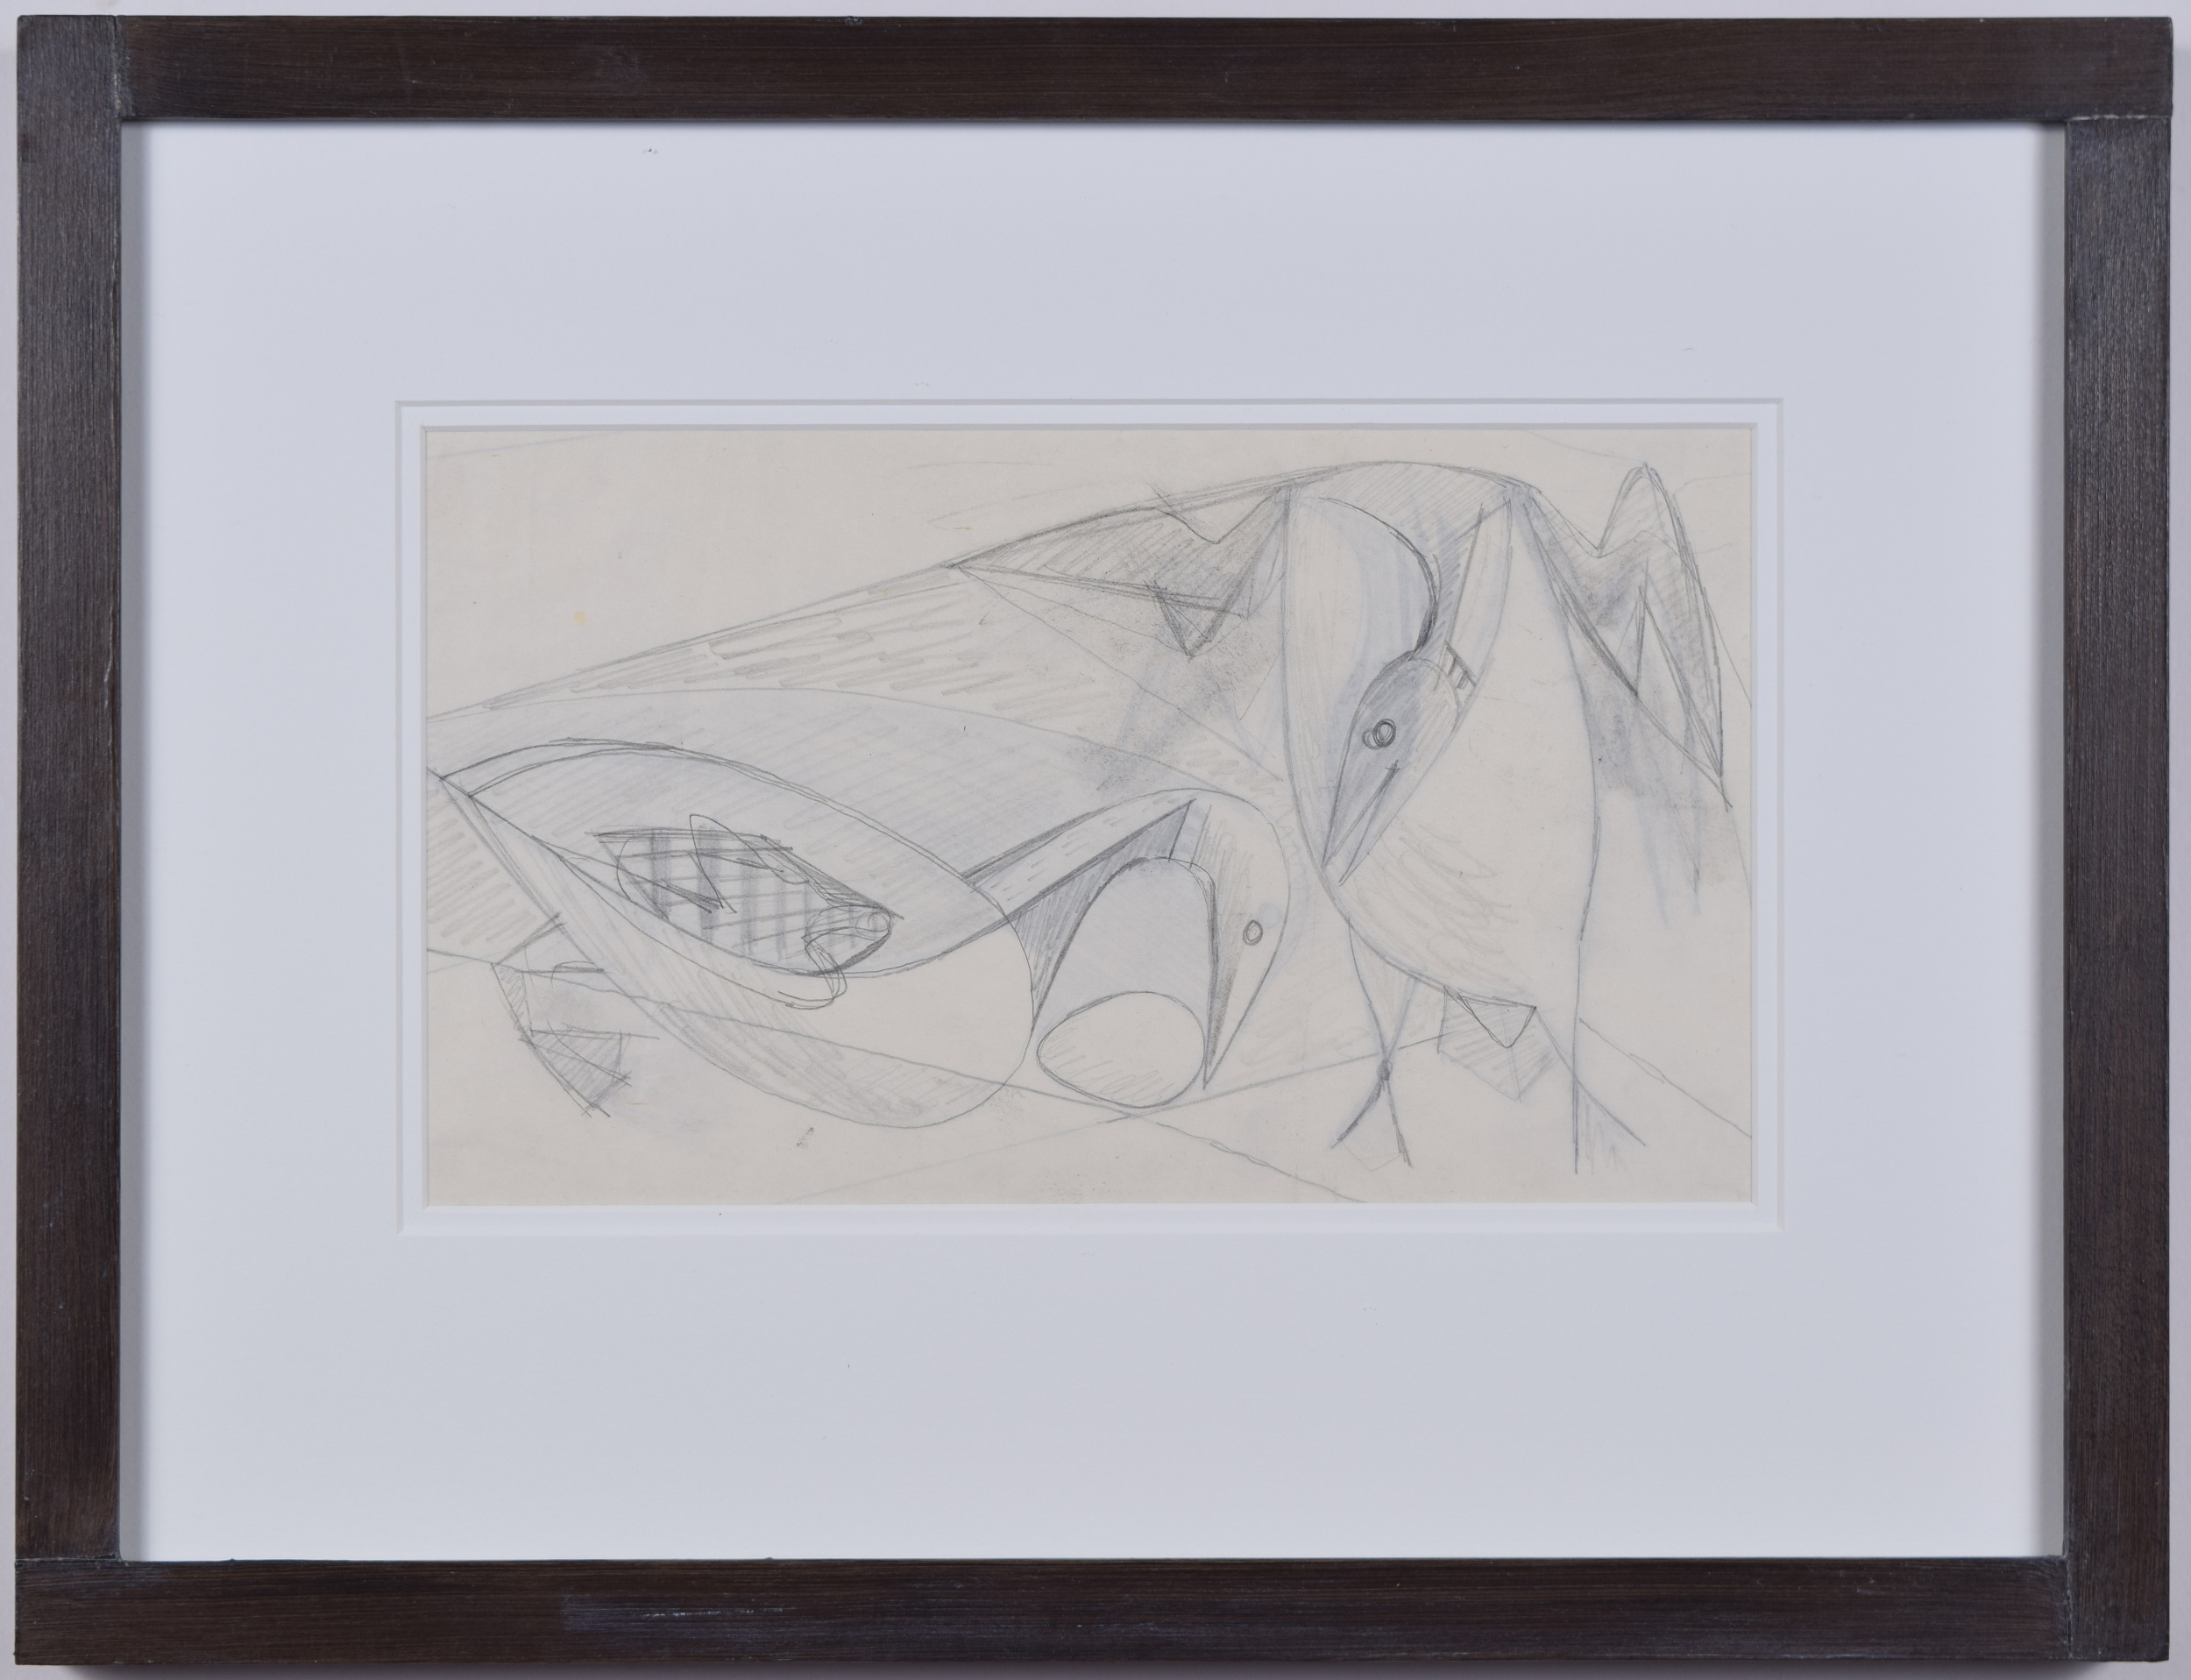 Clifford Ellis Ducks pencil sketch in butt-jointed Nicholson frame